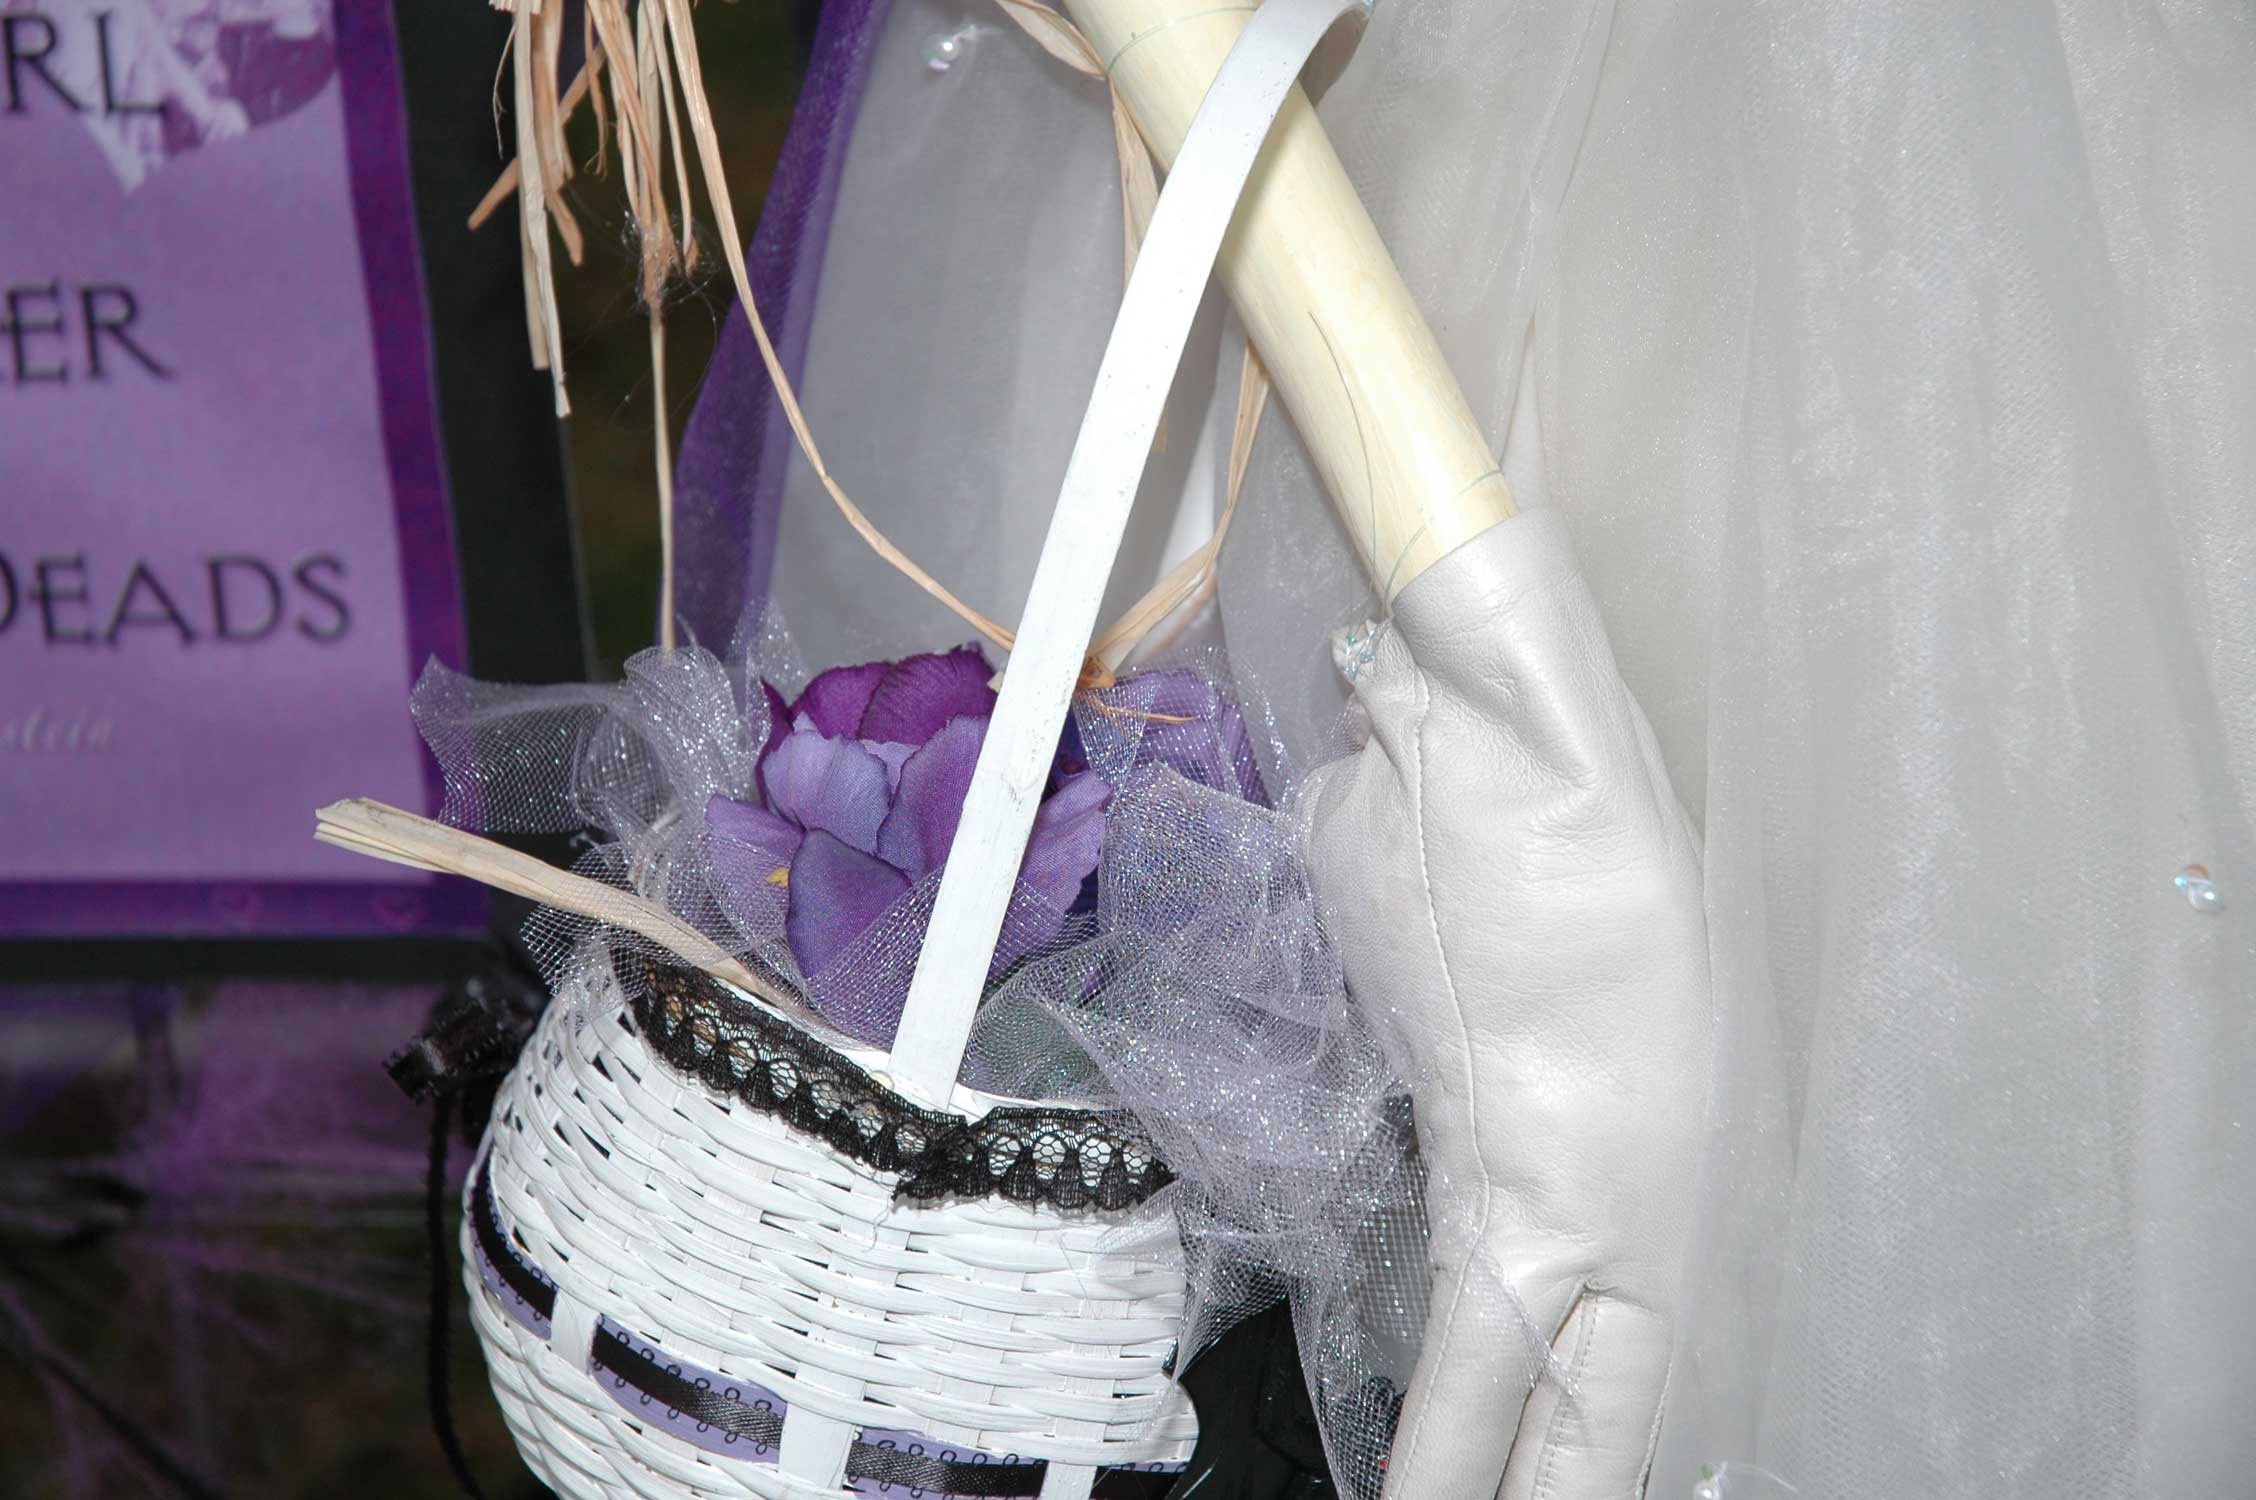 Our flower girl wears gloves and carries a basket of purple flowers.